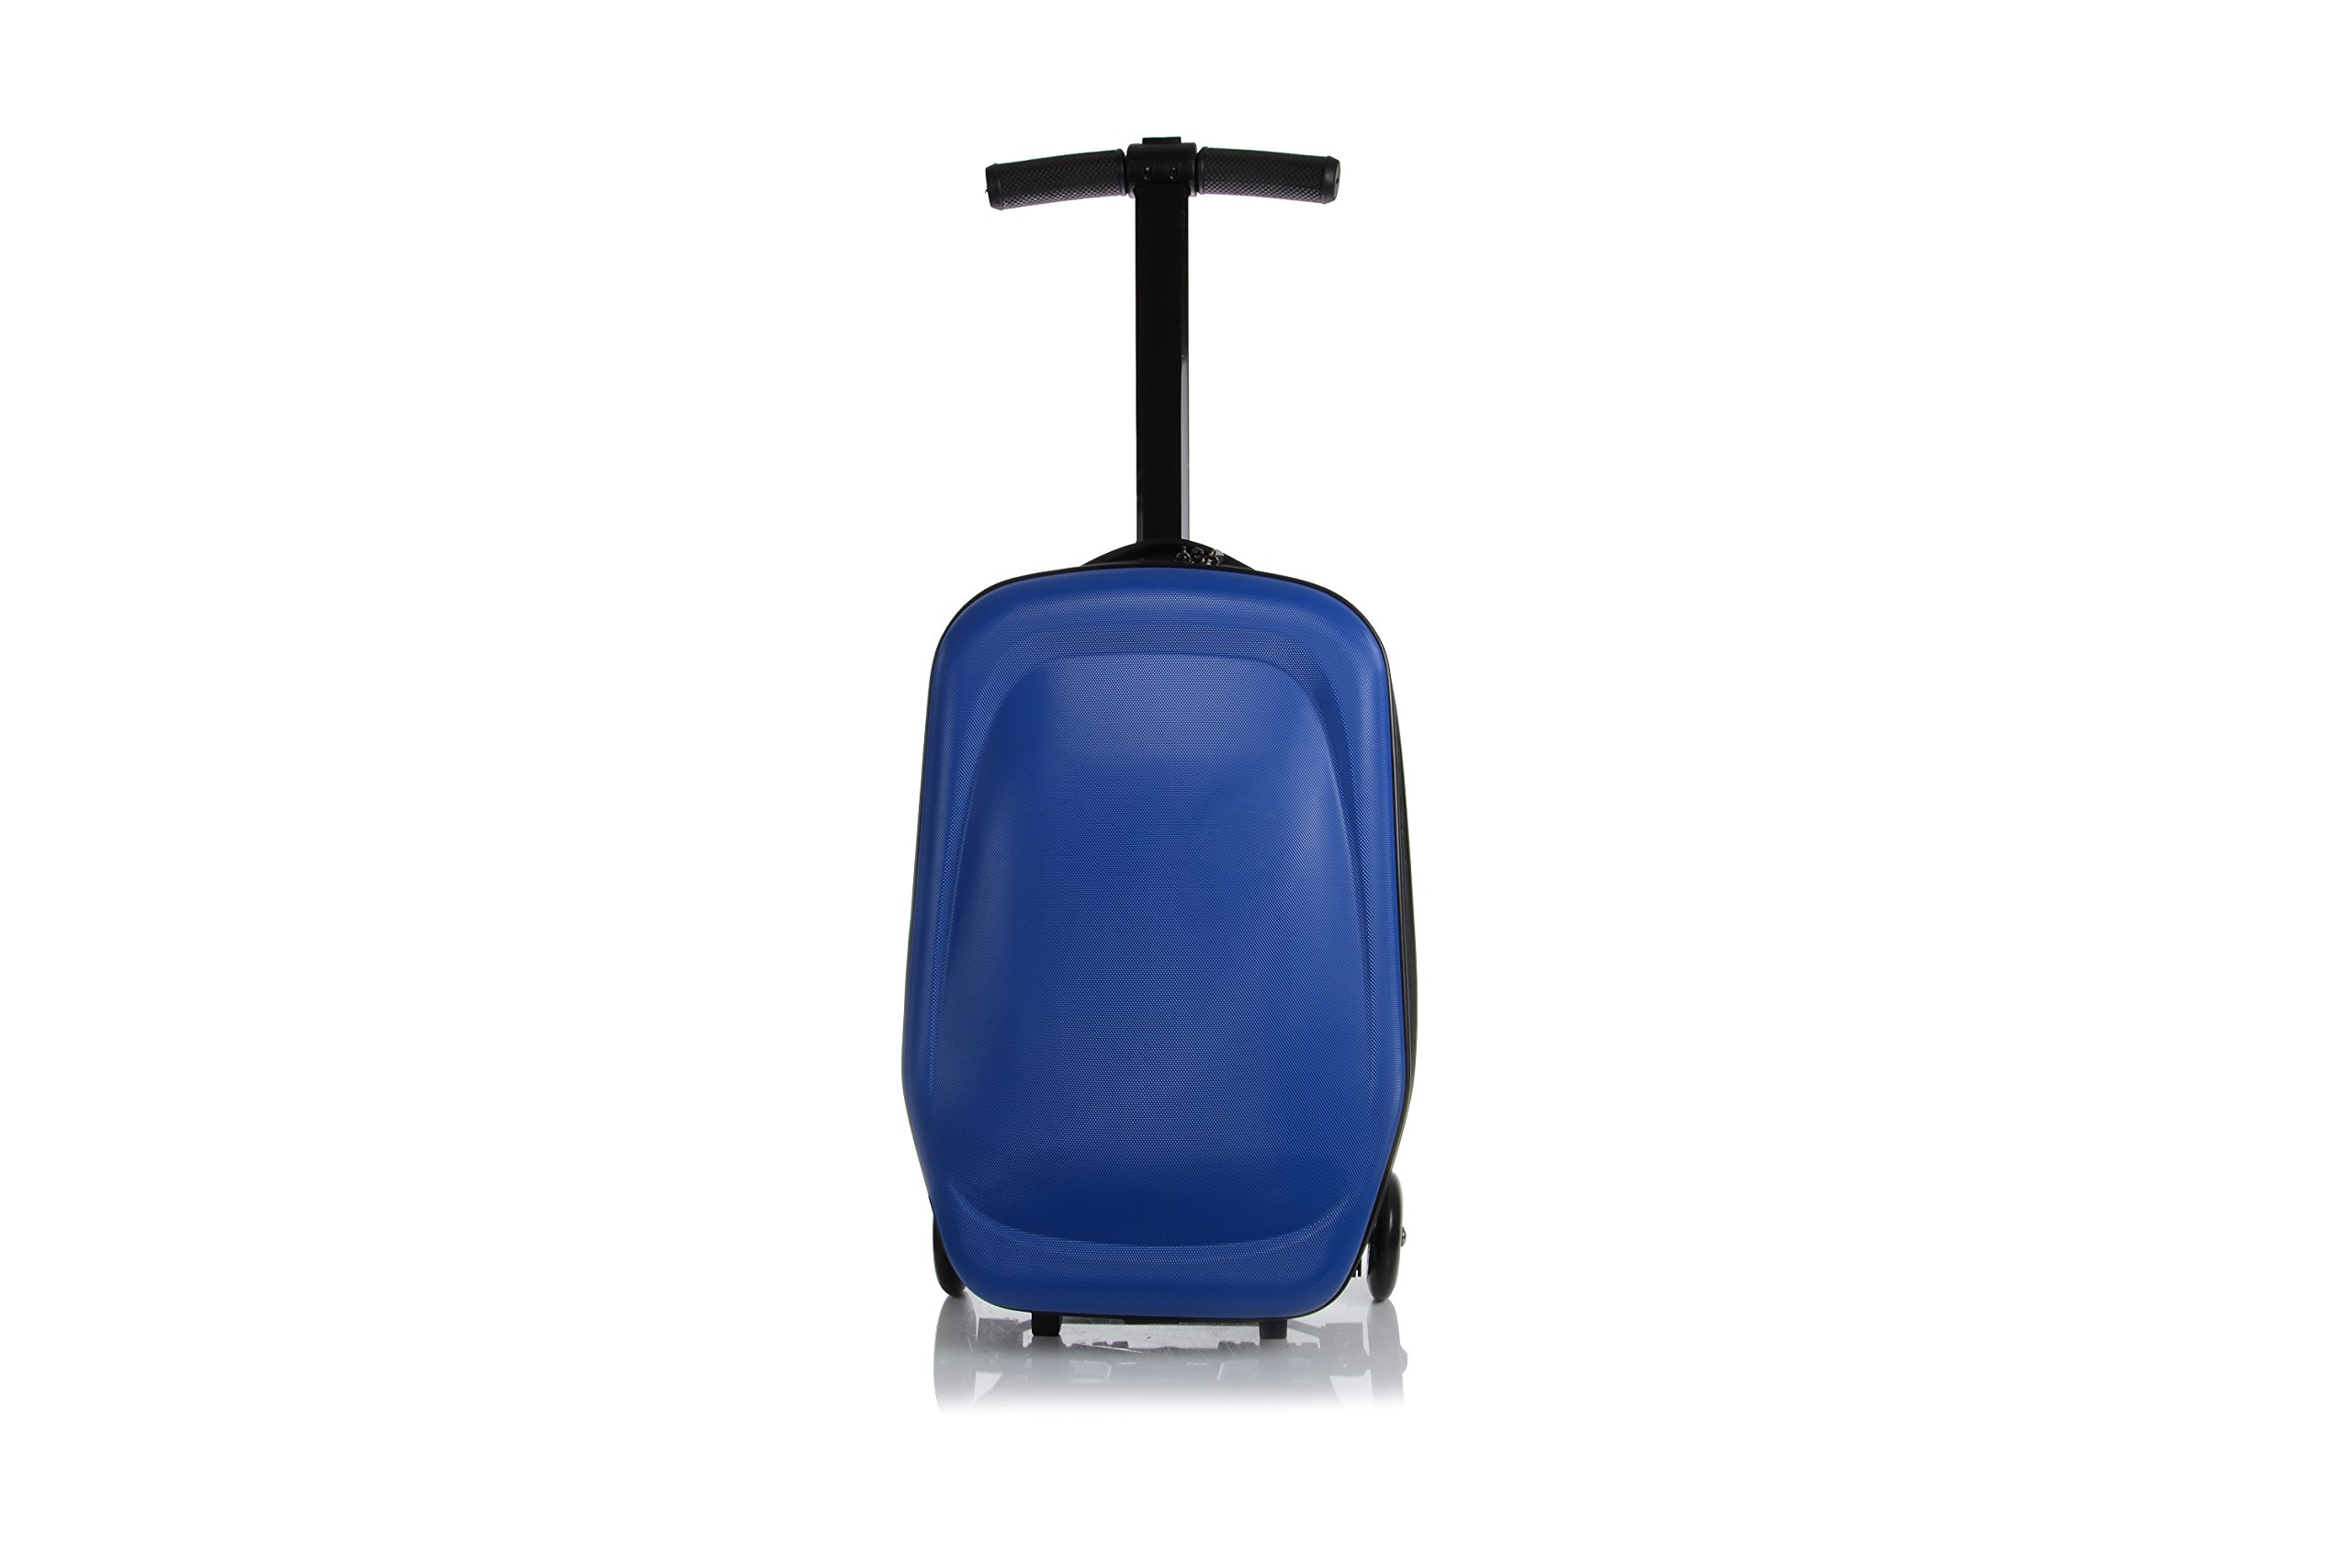 20 Inch Unisex Multi-Functional Scooter Travel Upright Suitcase Luggage with 3 Hot Wheels for Girls Boys and students Foldable Trolley Convertible Travel School Bag (Blue) by Little Jasmine